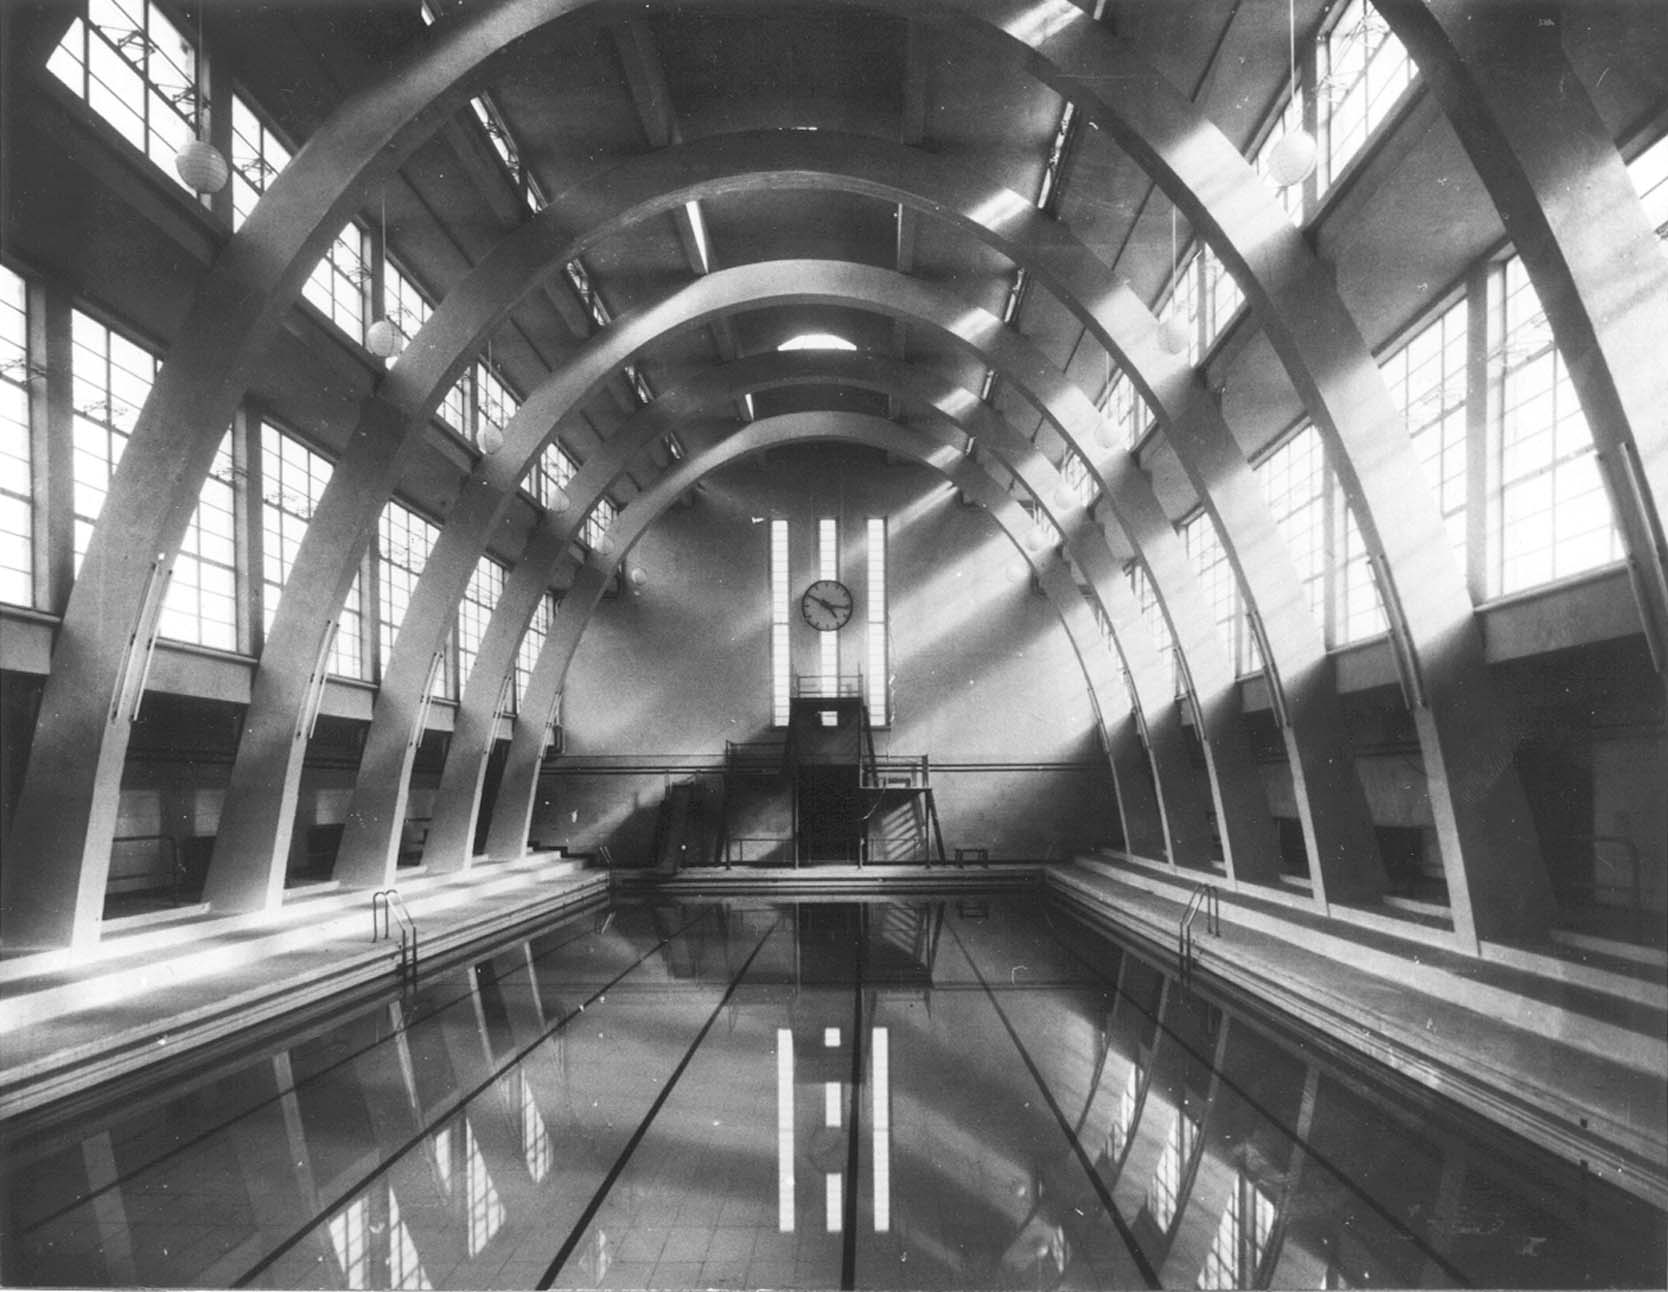 Black and white photograph depicting curved glazed roof with radial solid supports and water of pool at bottem.